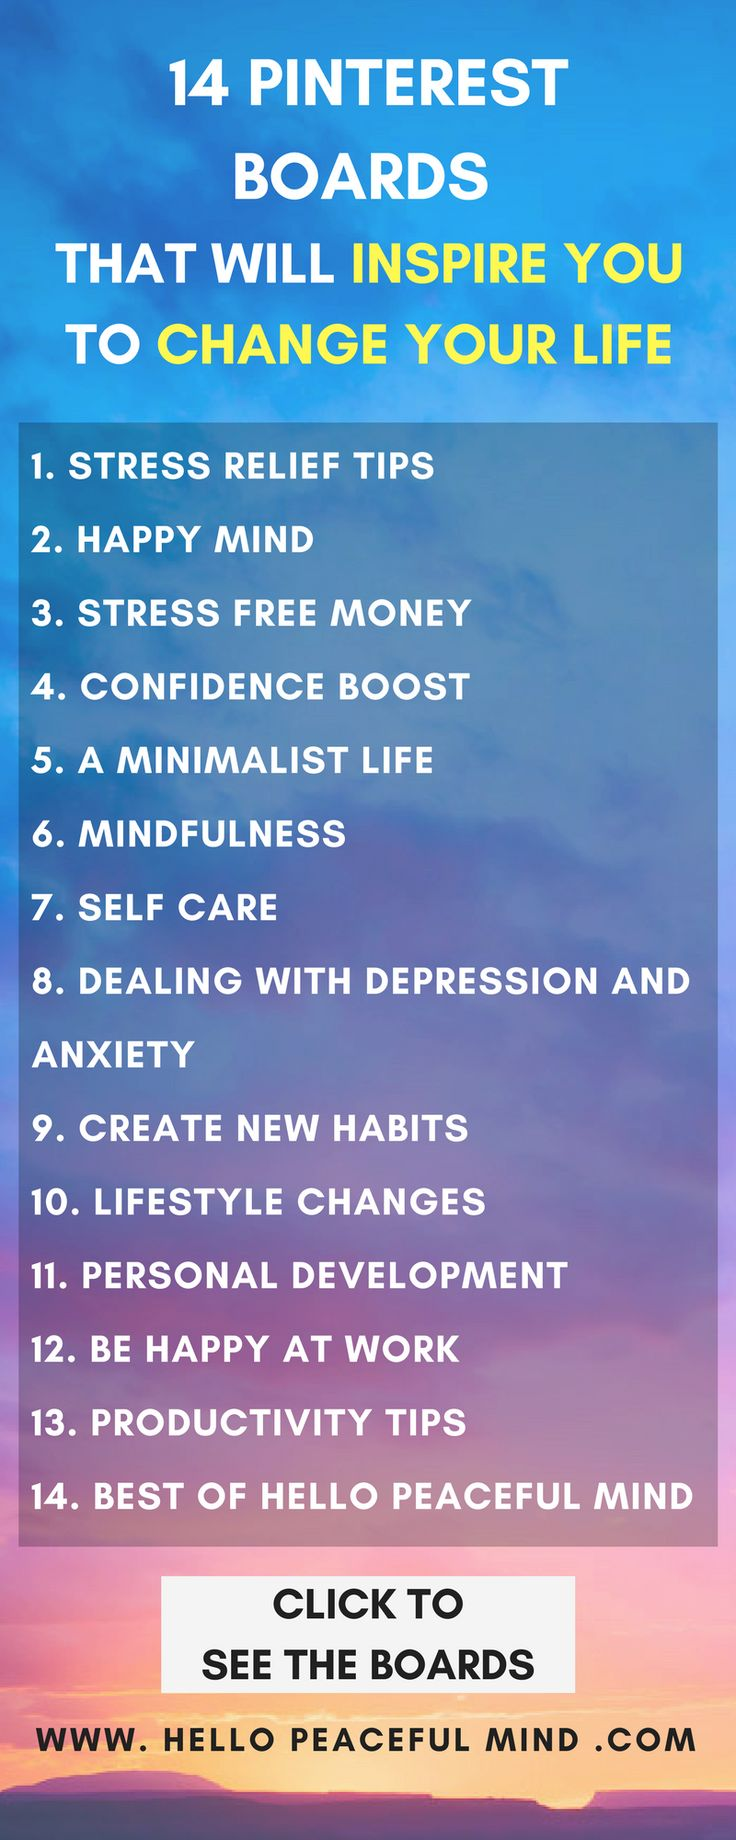 Follow these 14 Pinterest boards to get inspiration and change your life! Go to www.HelloPeacefulMind.com to see the boards!